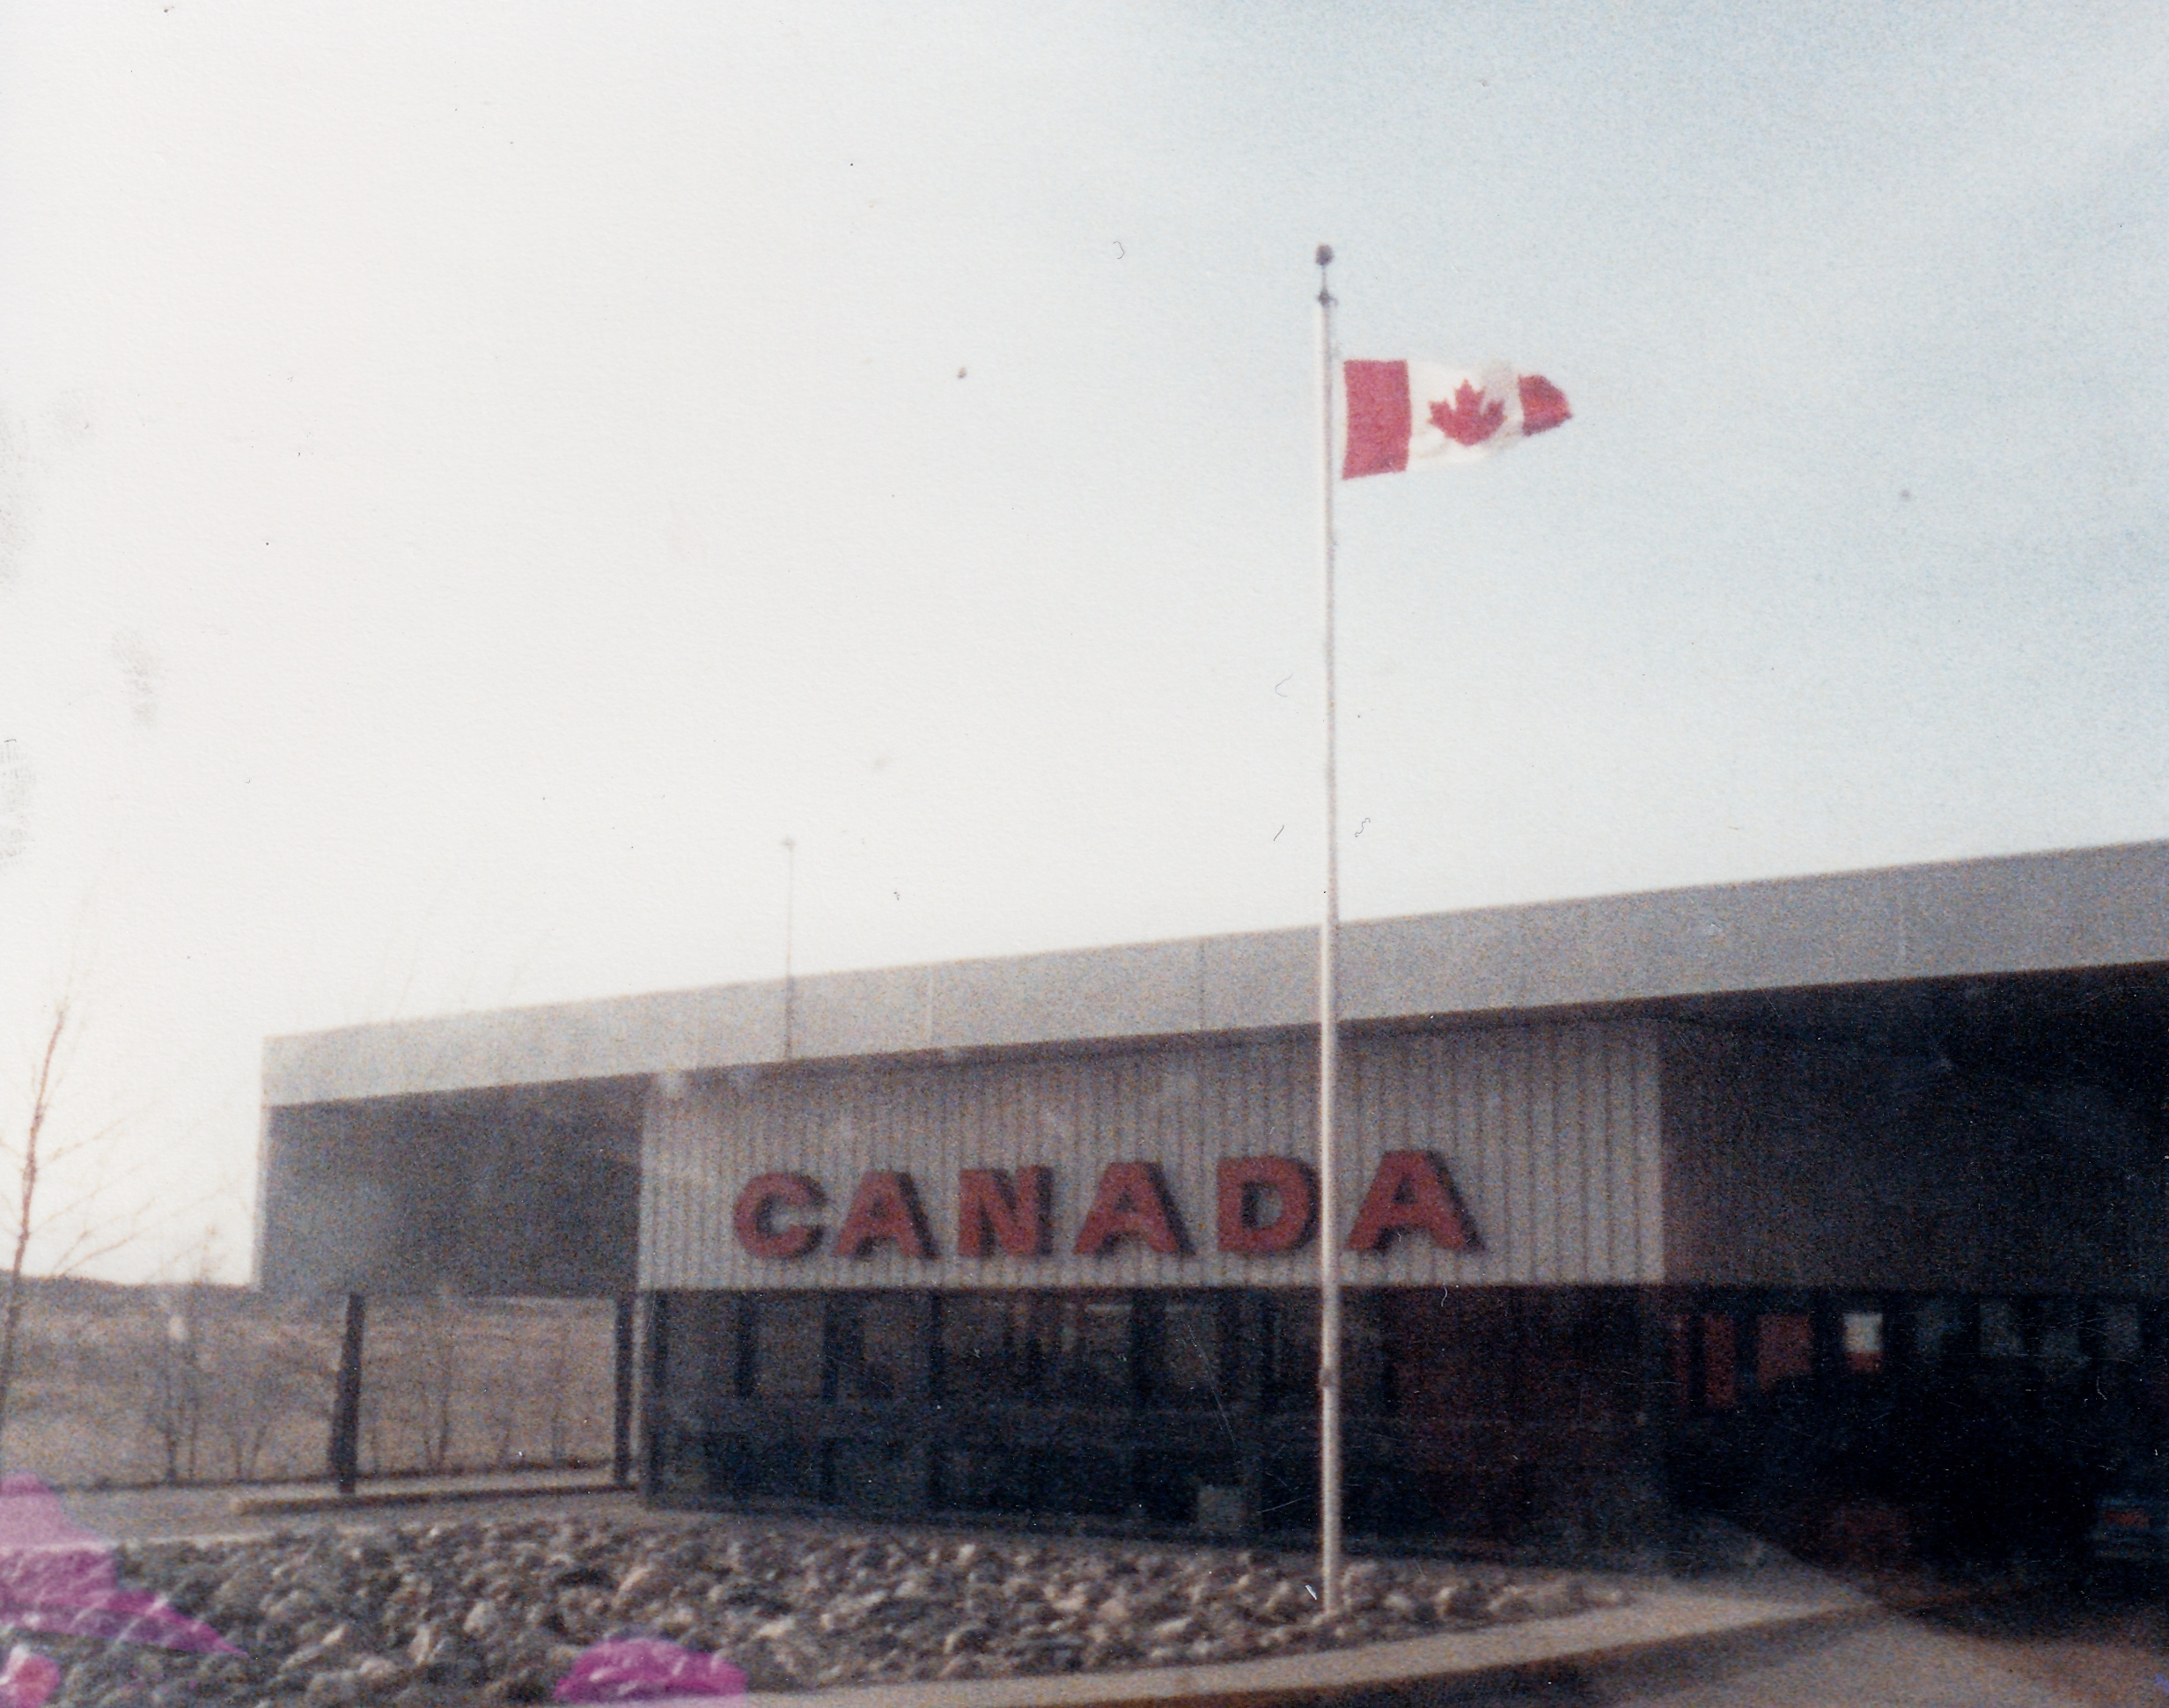 The Canadian border agency in Regway, from the window of the Westernaires bus in March of 1986.